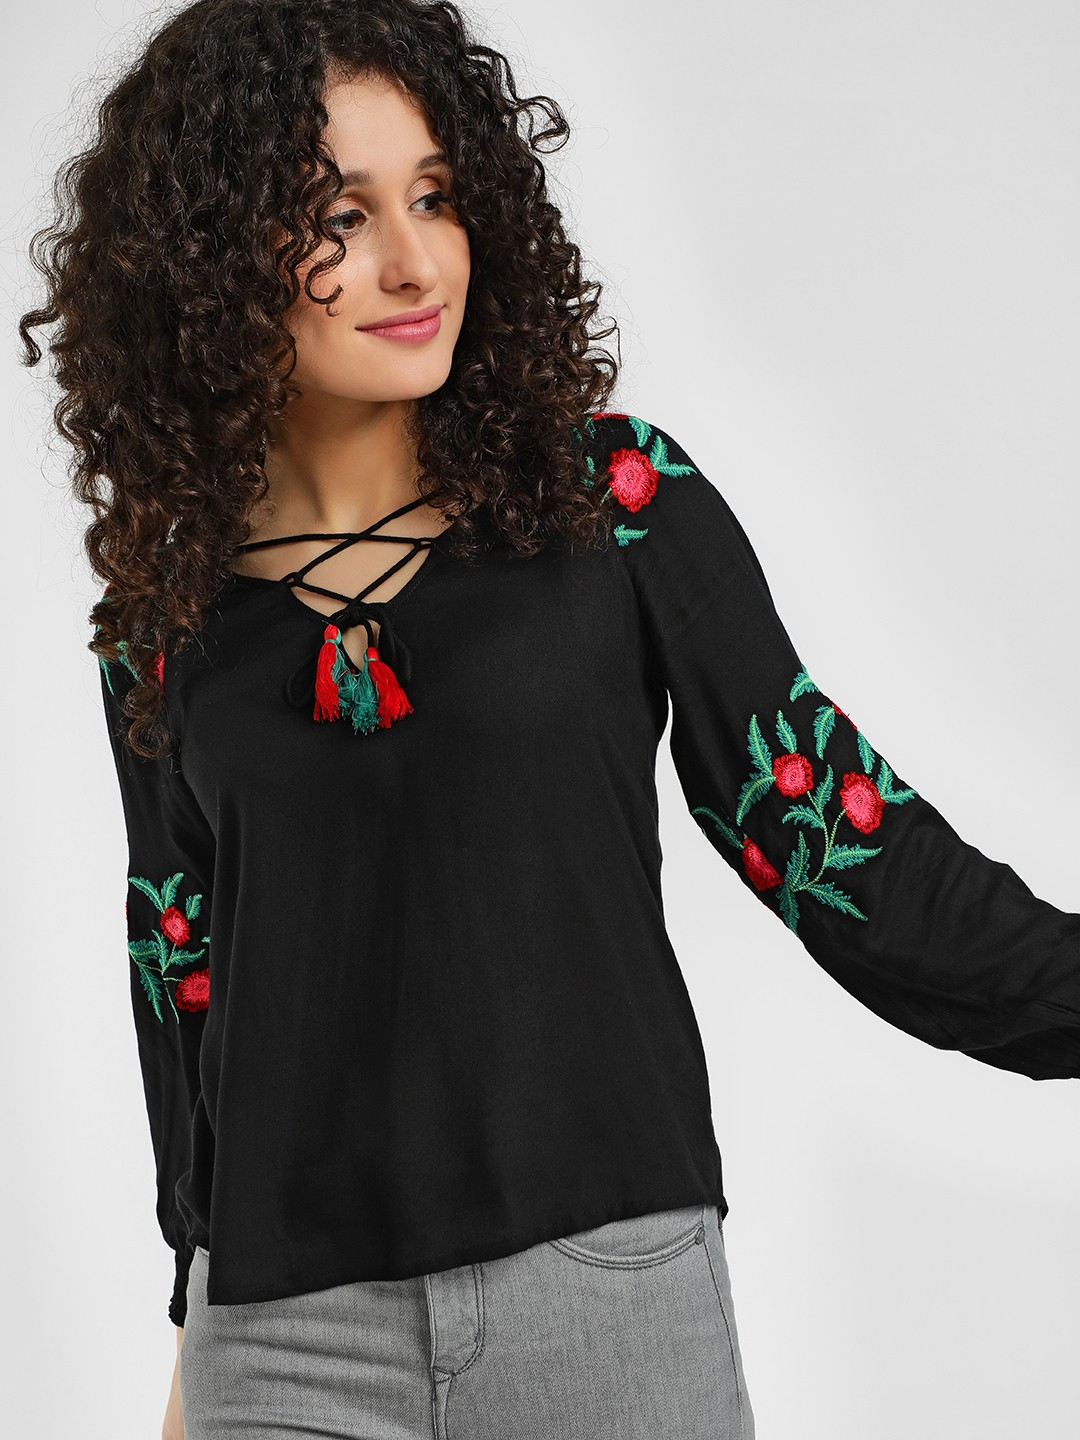 Rena Love Black Floral Embroidered Cross Tie-Up Blouse 1